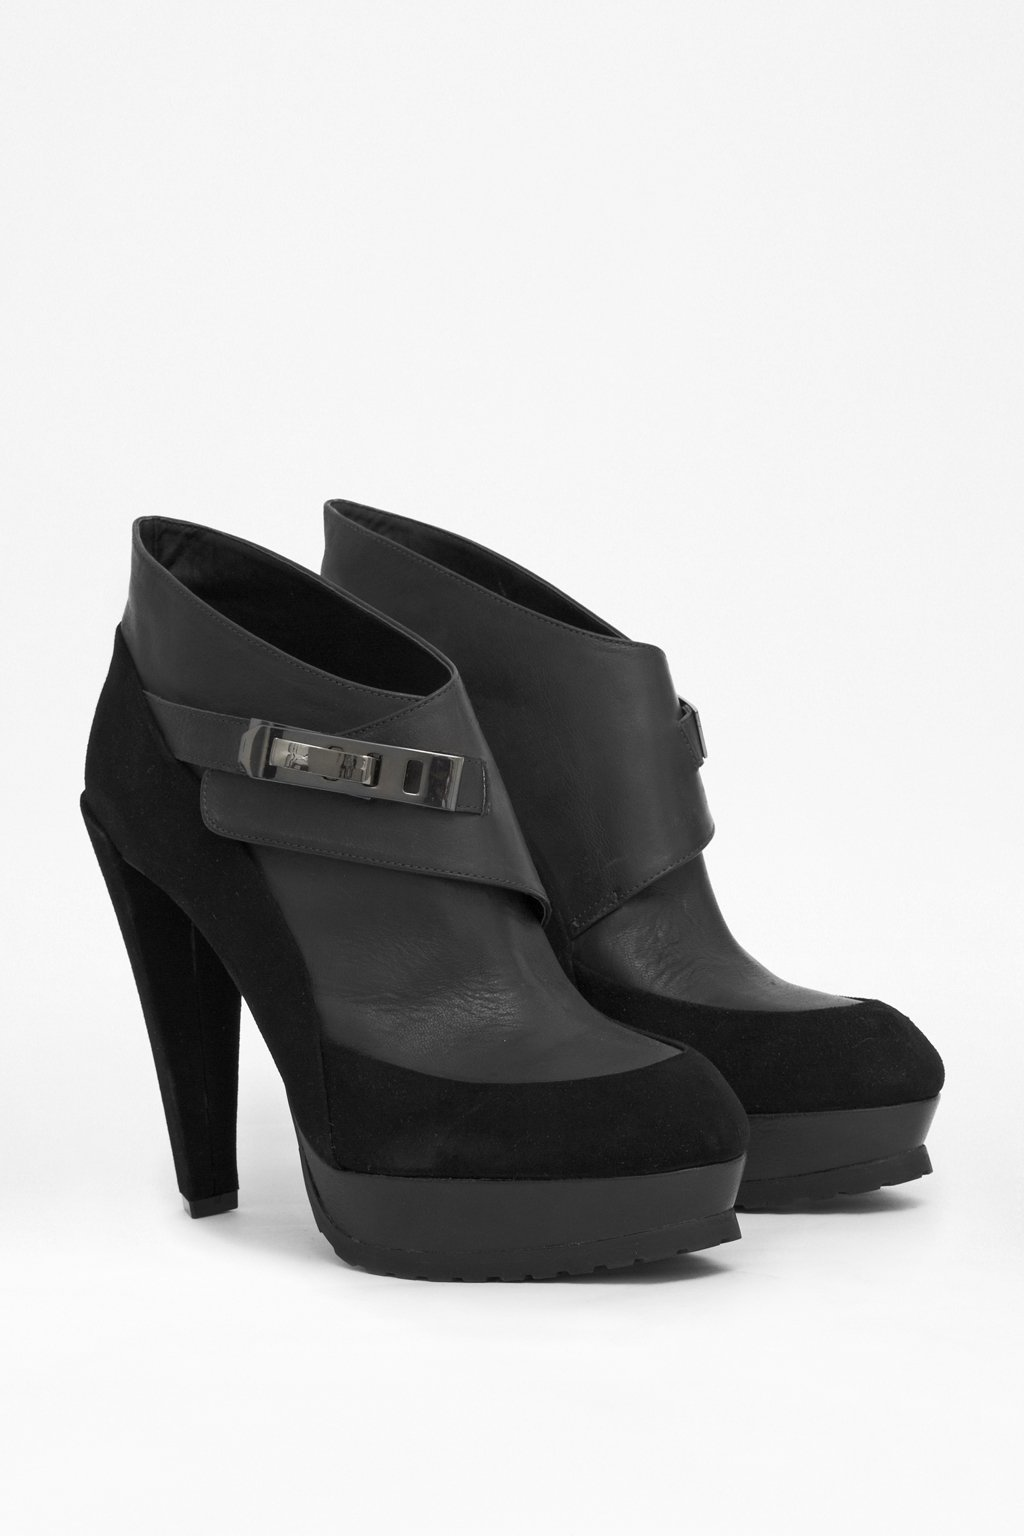 French Connection Nadia High-Heeled Leather Boots in Black